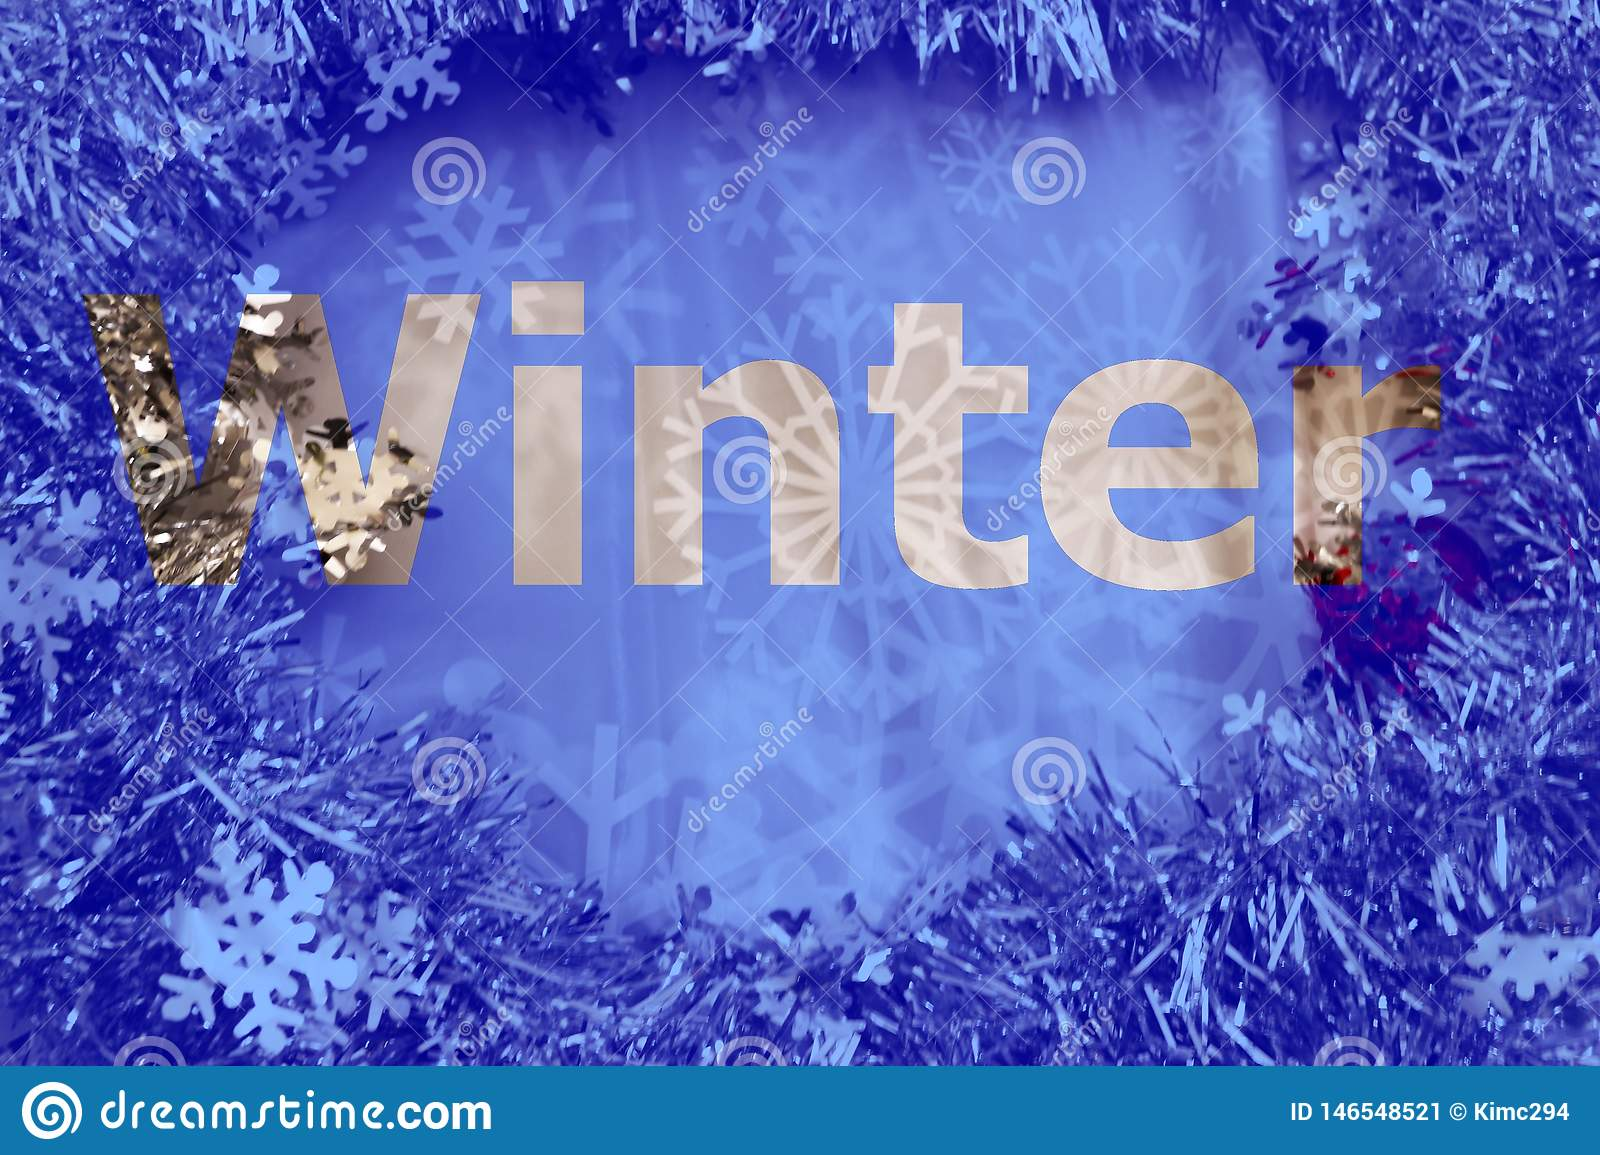 Winter cut out letters on glitter and snowflake background